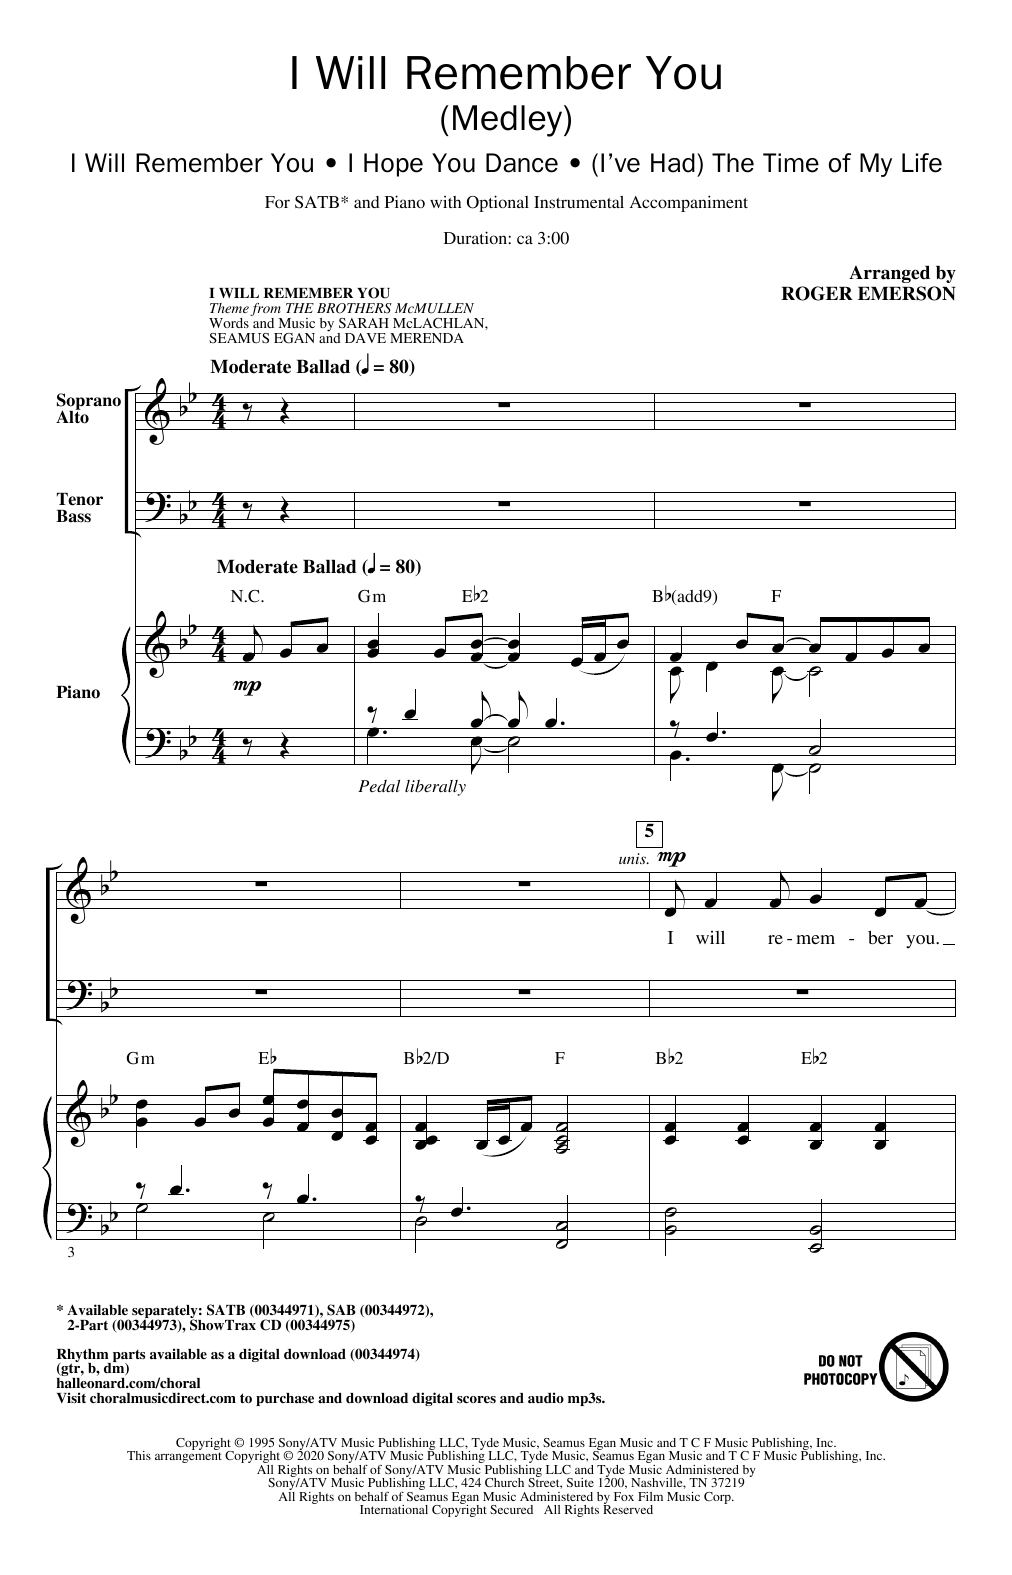 Roger Emerson I Will Remember You (Medley) sheet music notes and chords. Download Printable PDF.